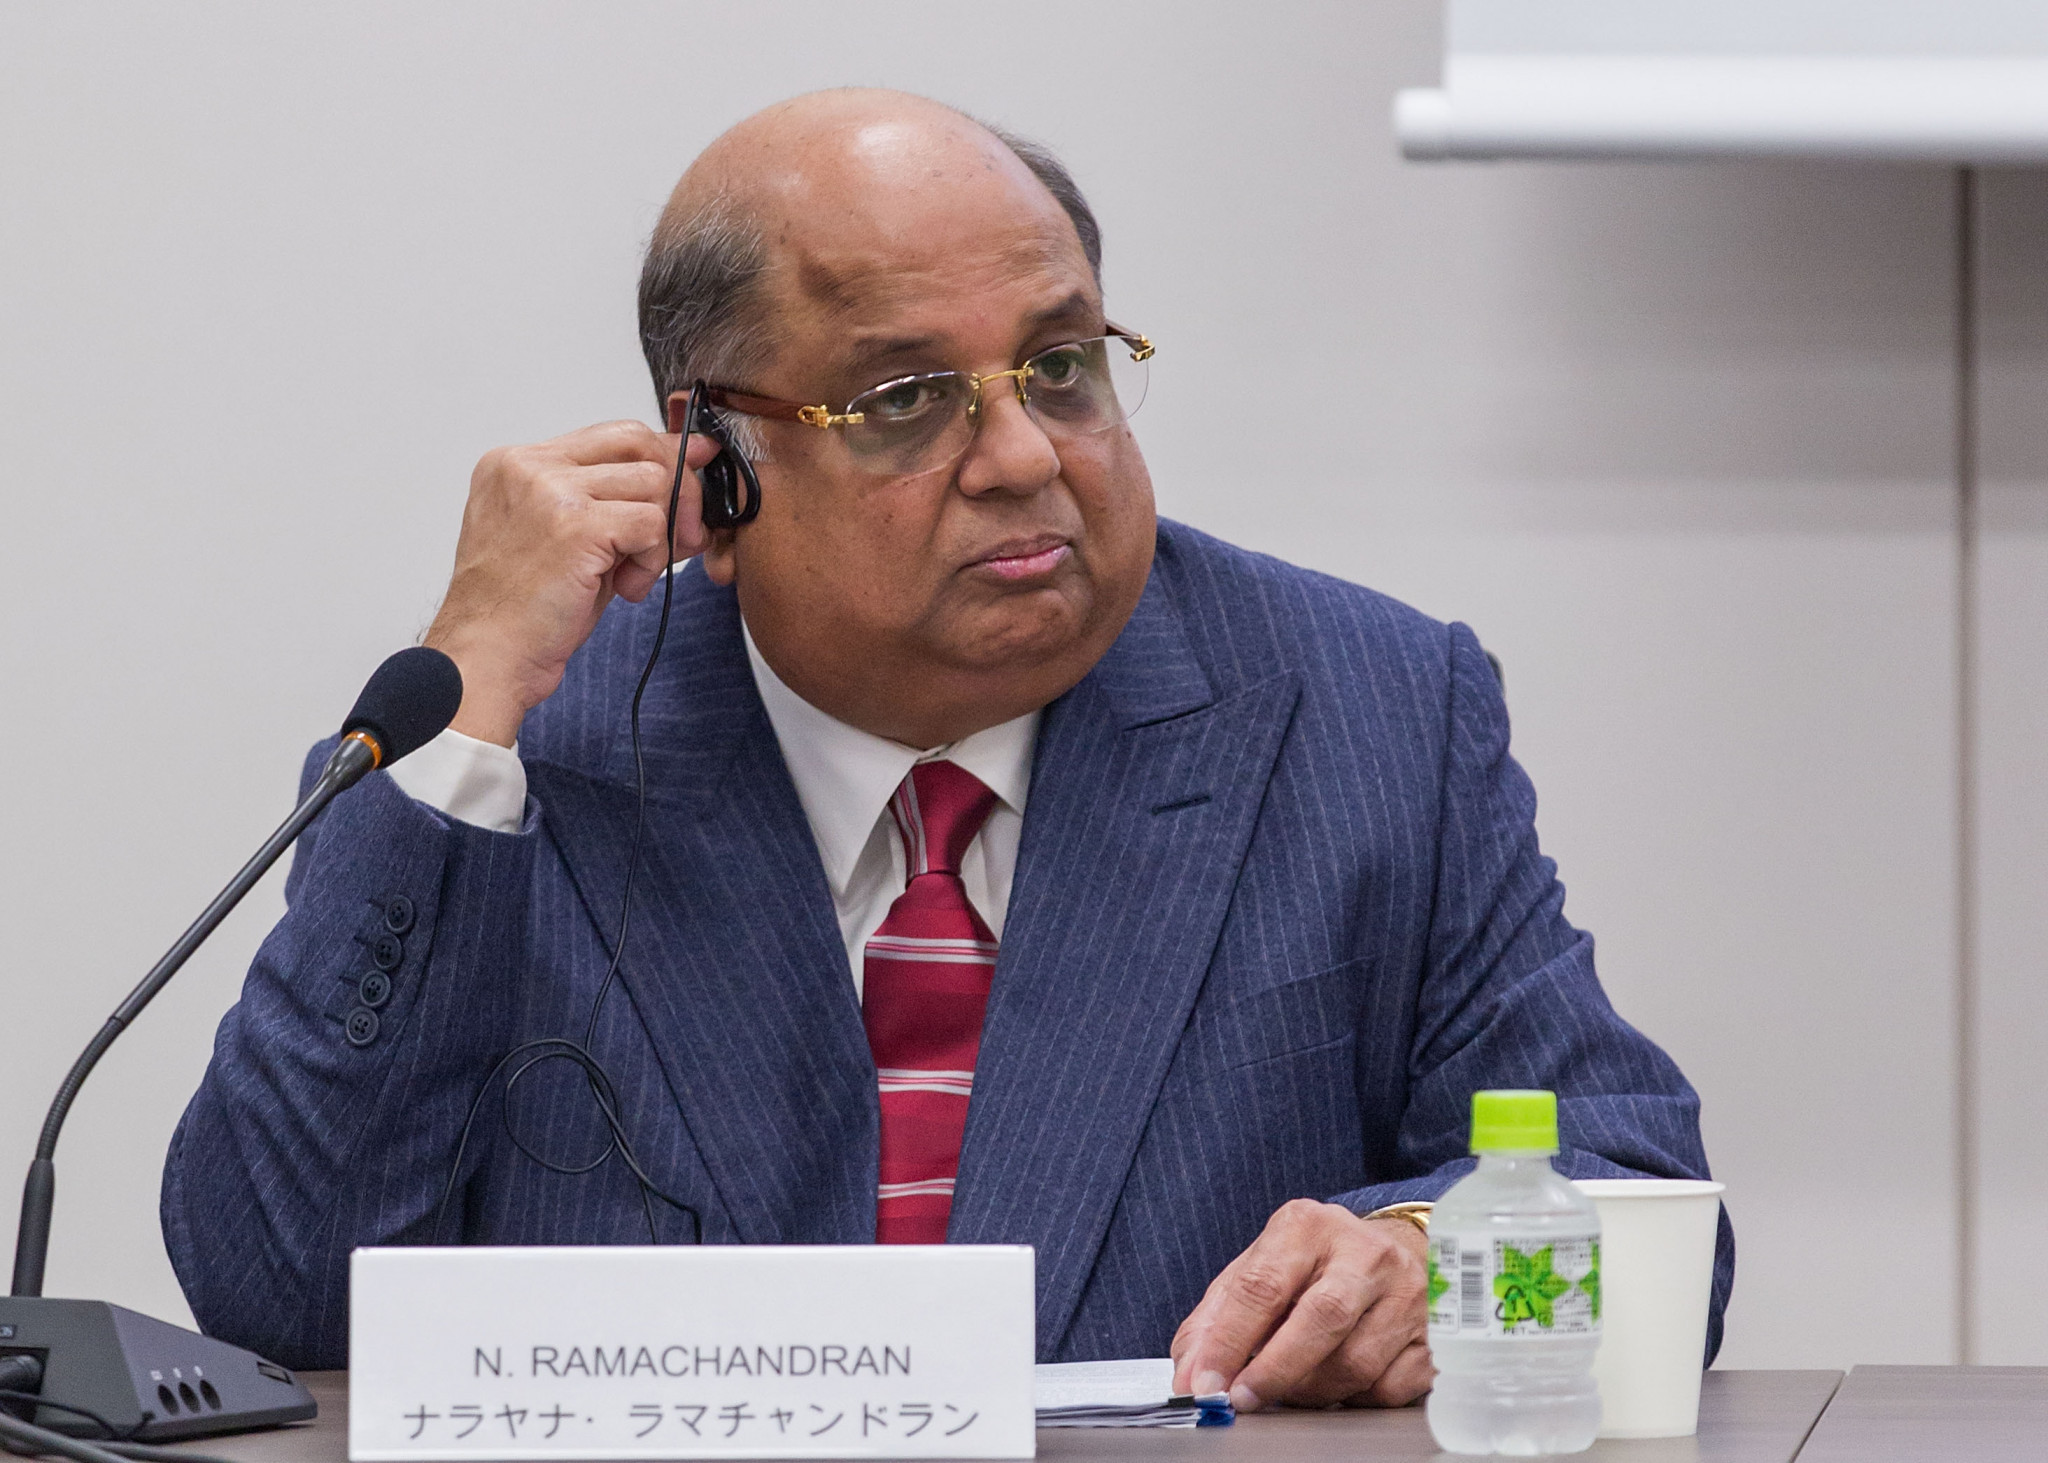 Batra favourite to replace Ramachandran as Indian Olympic Association President